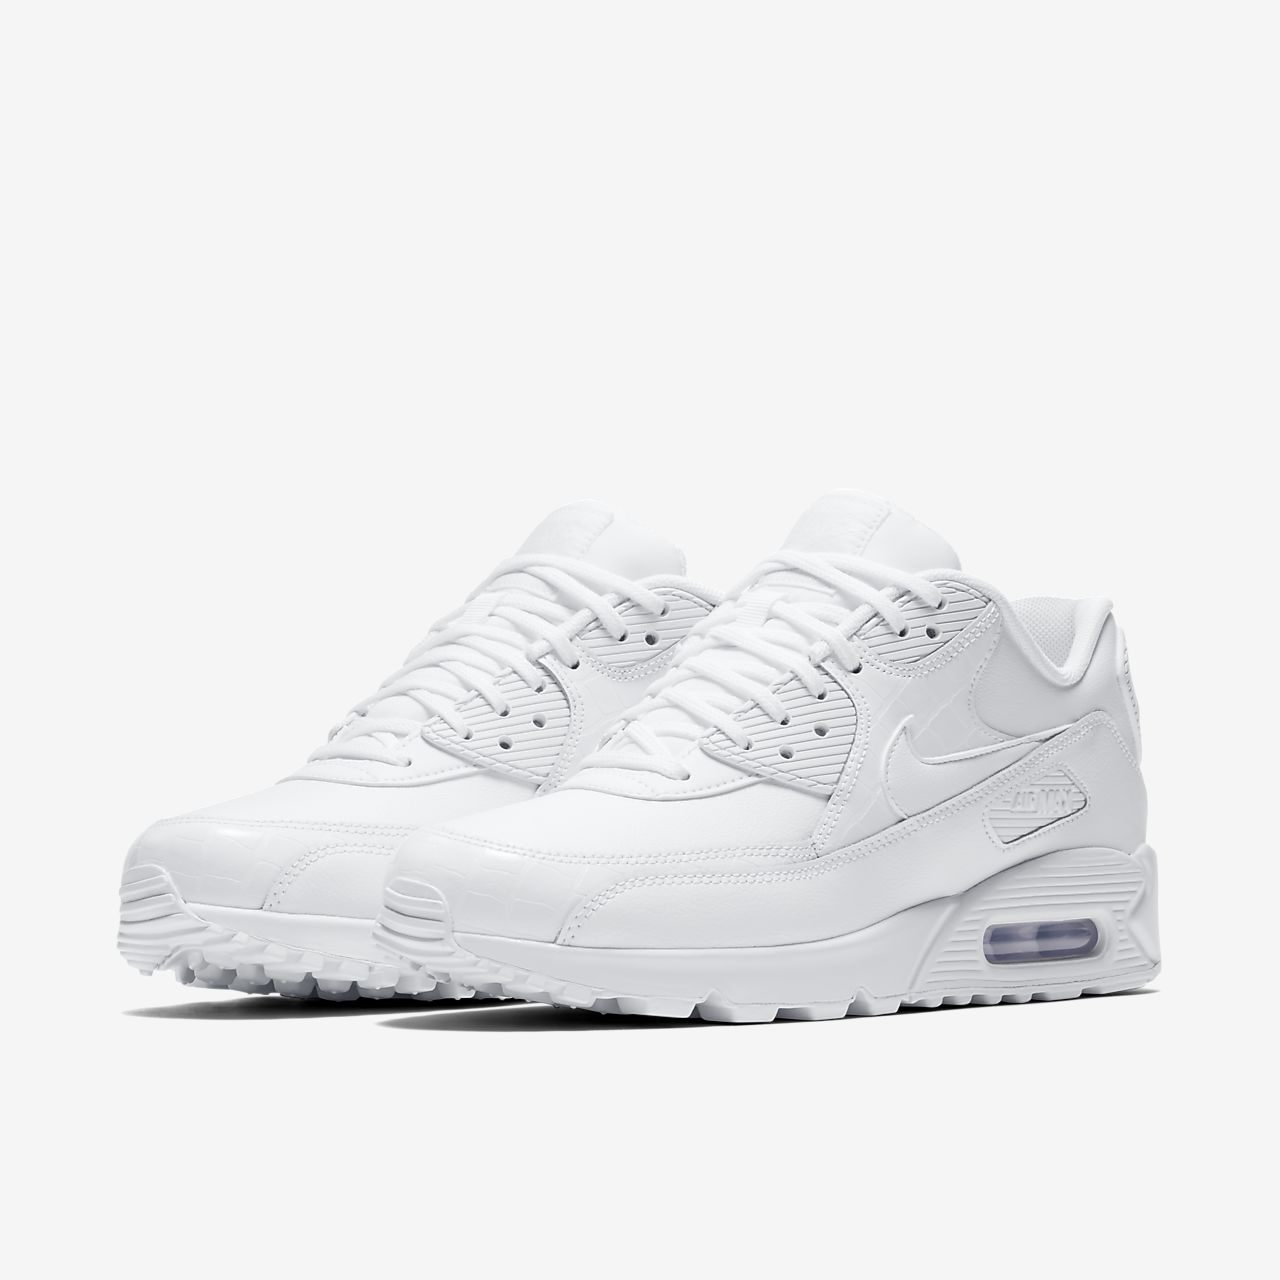 premium selection 5adca 288f9 Chaussure Nike Air Max 90 pour Femme